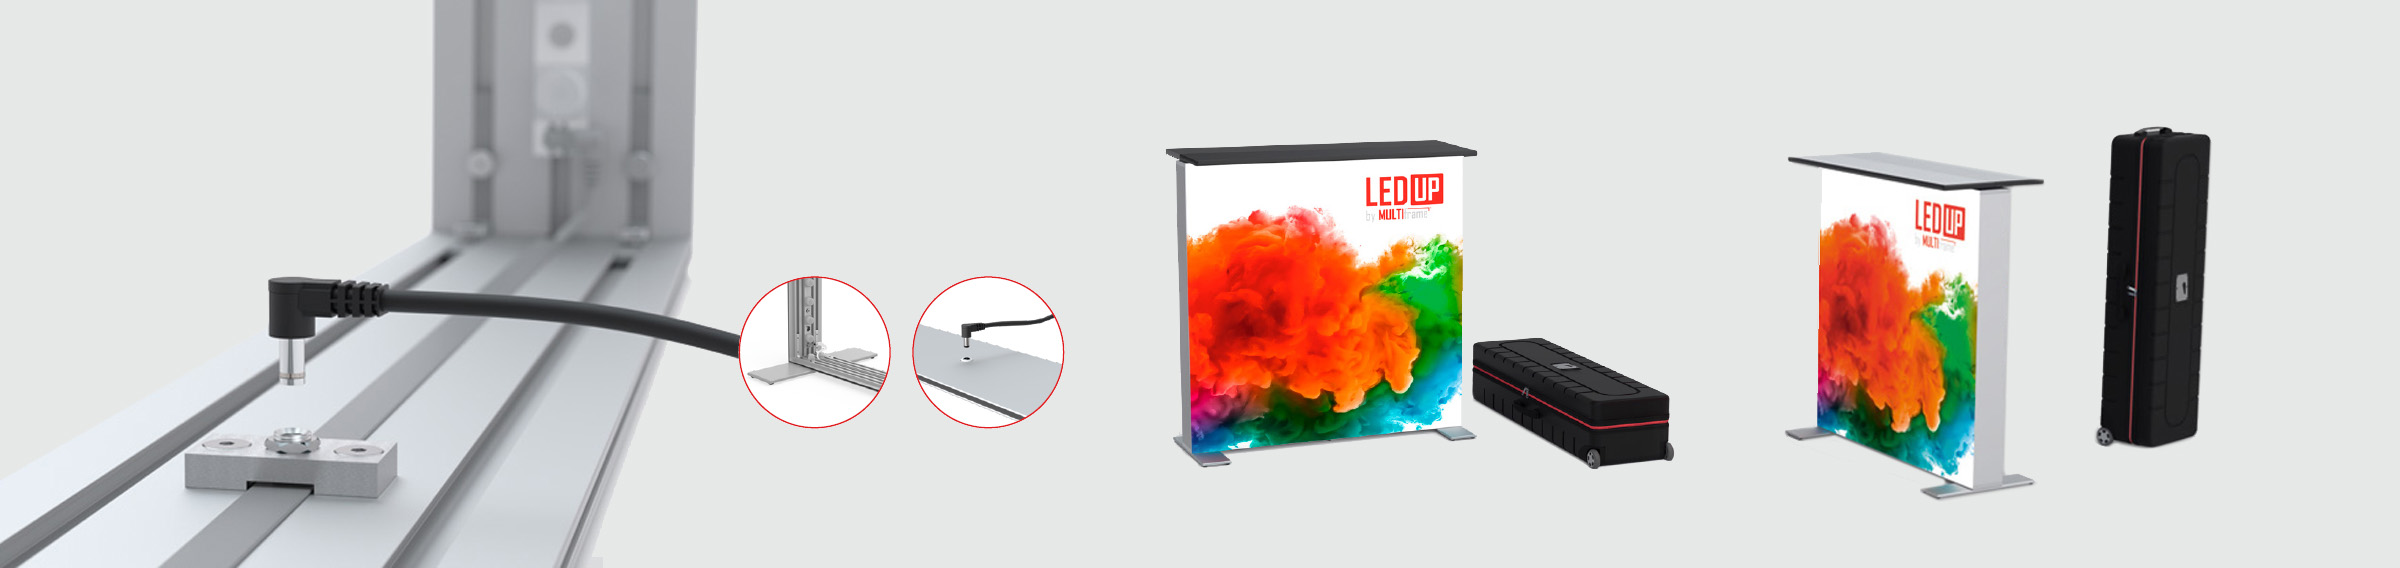 LED UP - COUNTER